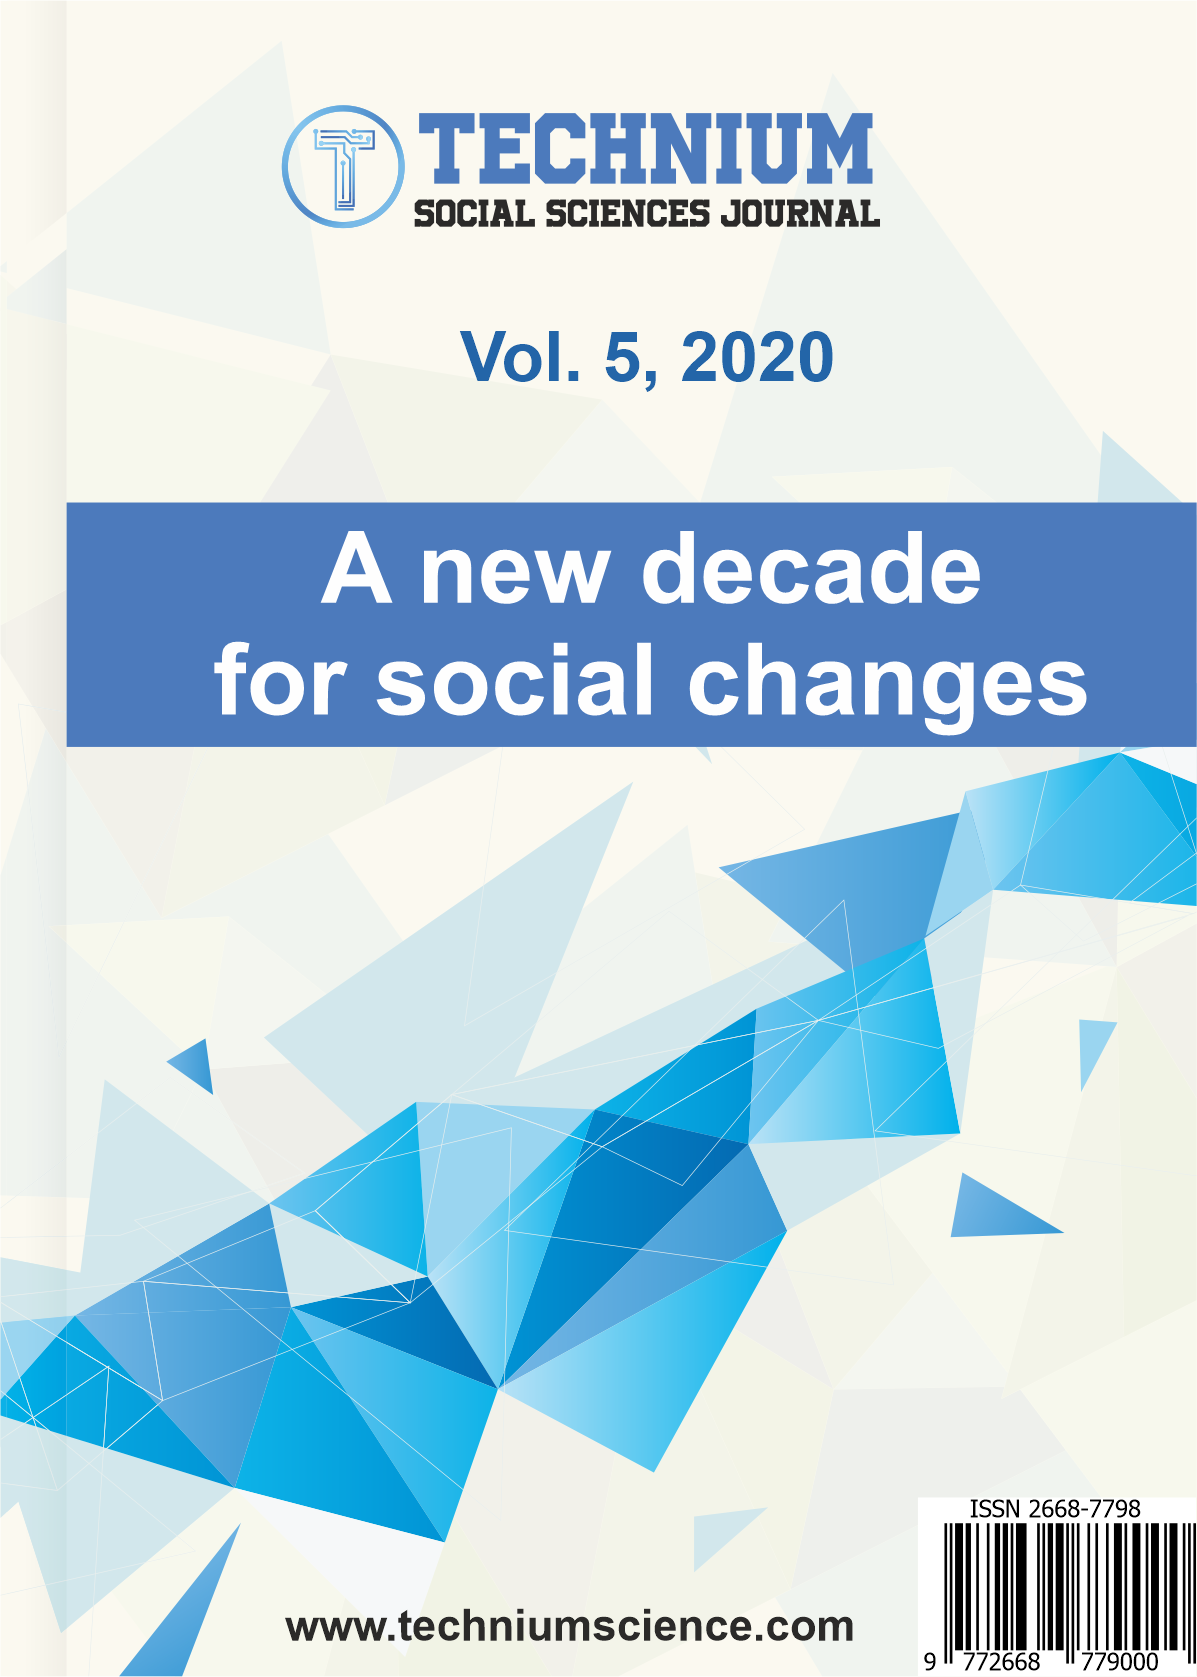 View Vol. 5 (2020): A new decade for social changes